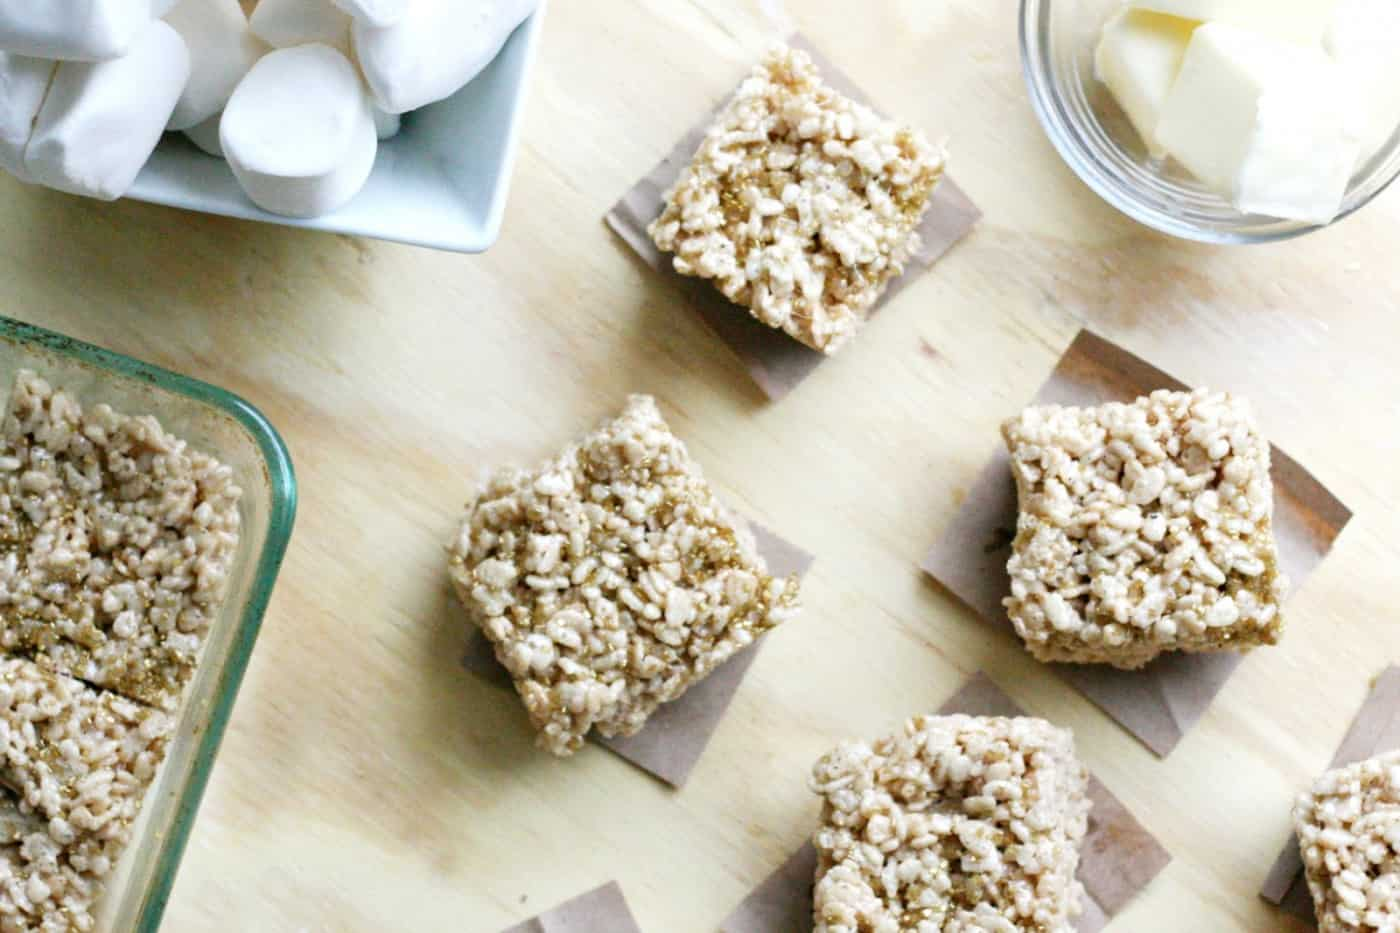 If you are looking for the best rice krispie treats recipe you've ever had, this one with brown butter and sea salt takes the cake. It's amazing!